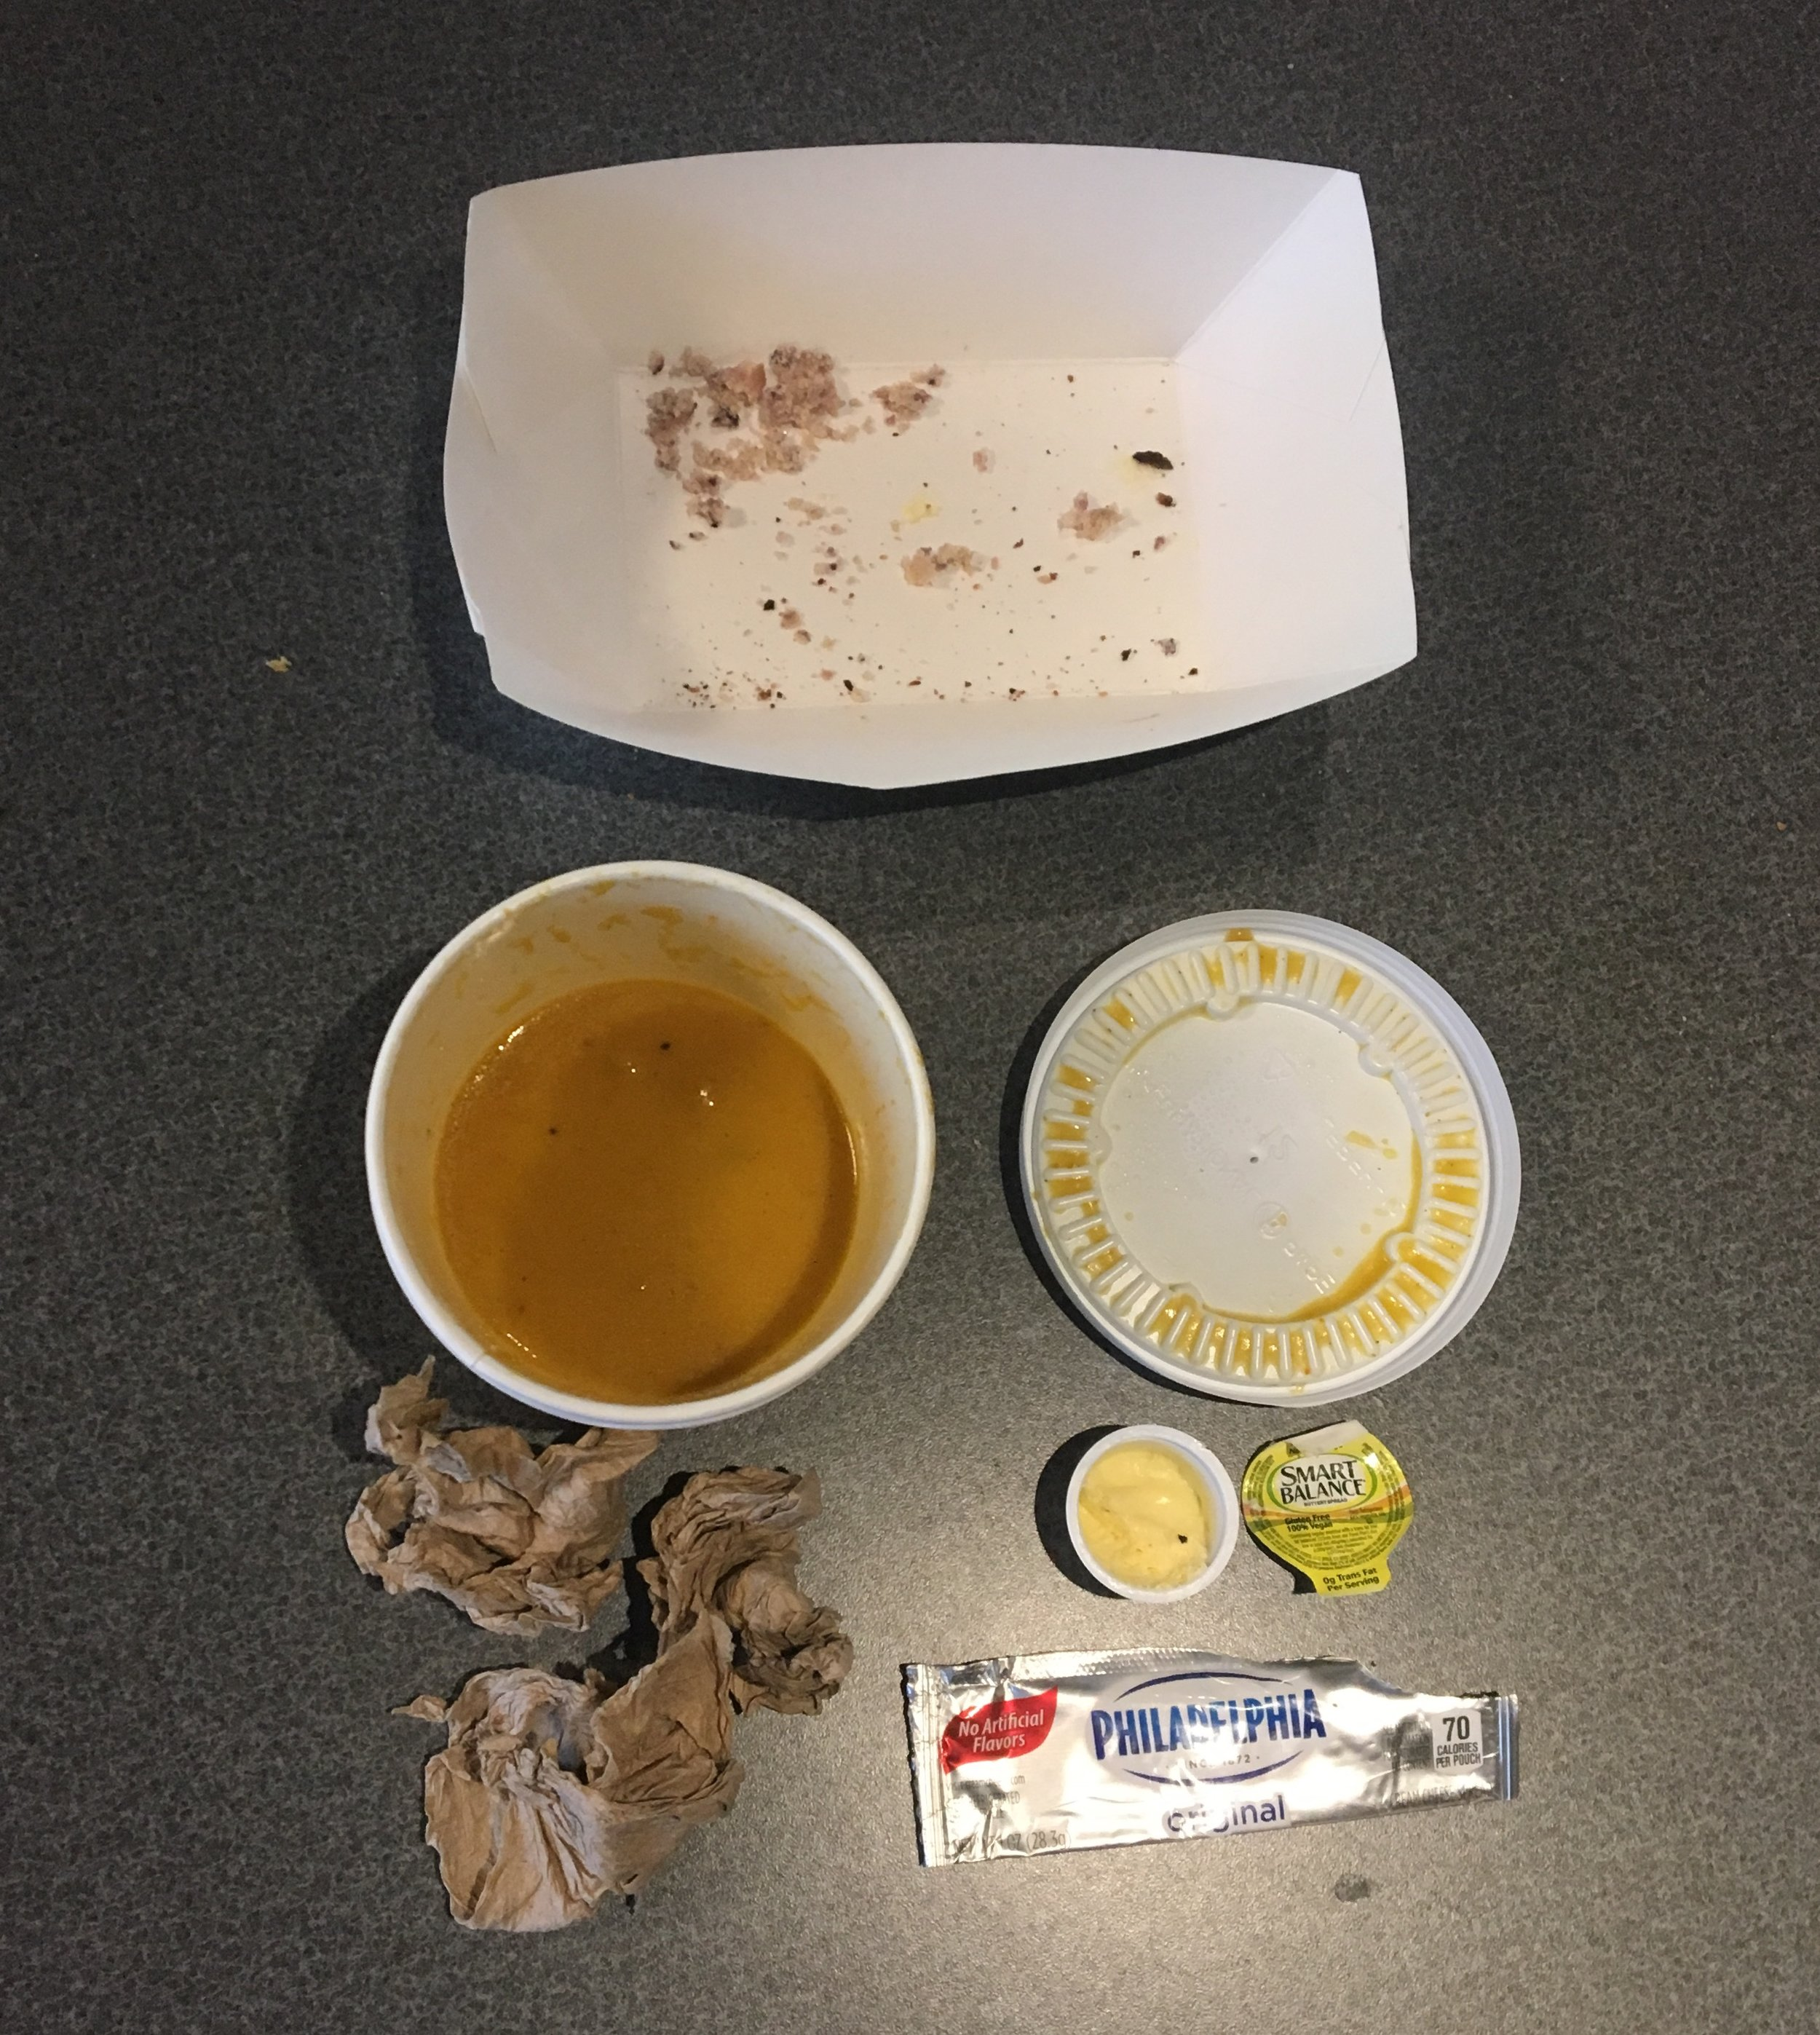 This is an example of two people's waste from just a quick snack in the café. Multiply this by 7,361 undergraduate students, and those living on campus eat at least three meals per day.